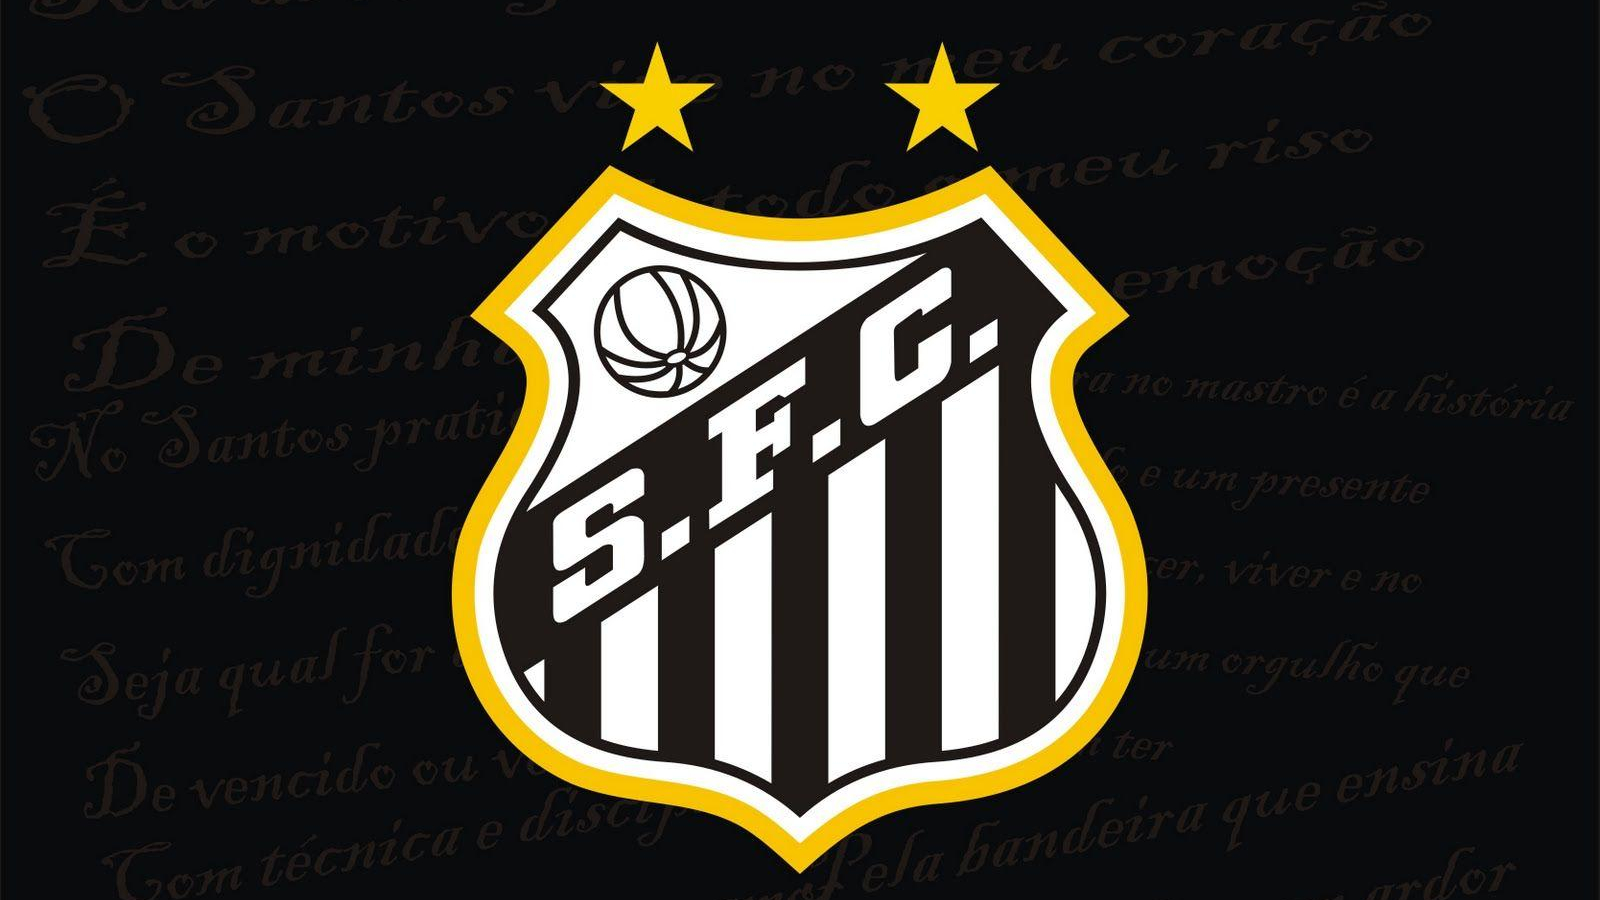 Free Download Santos Futebol Clube Wallpaper 1600x1200 For Your